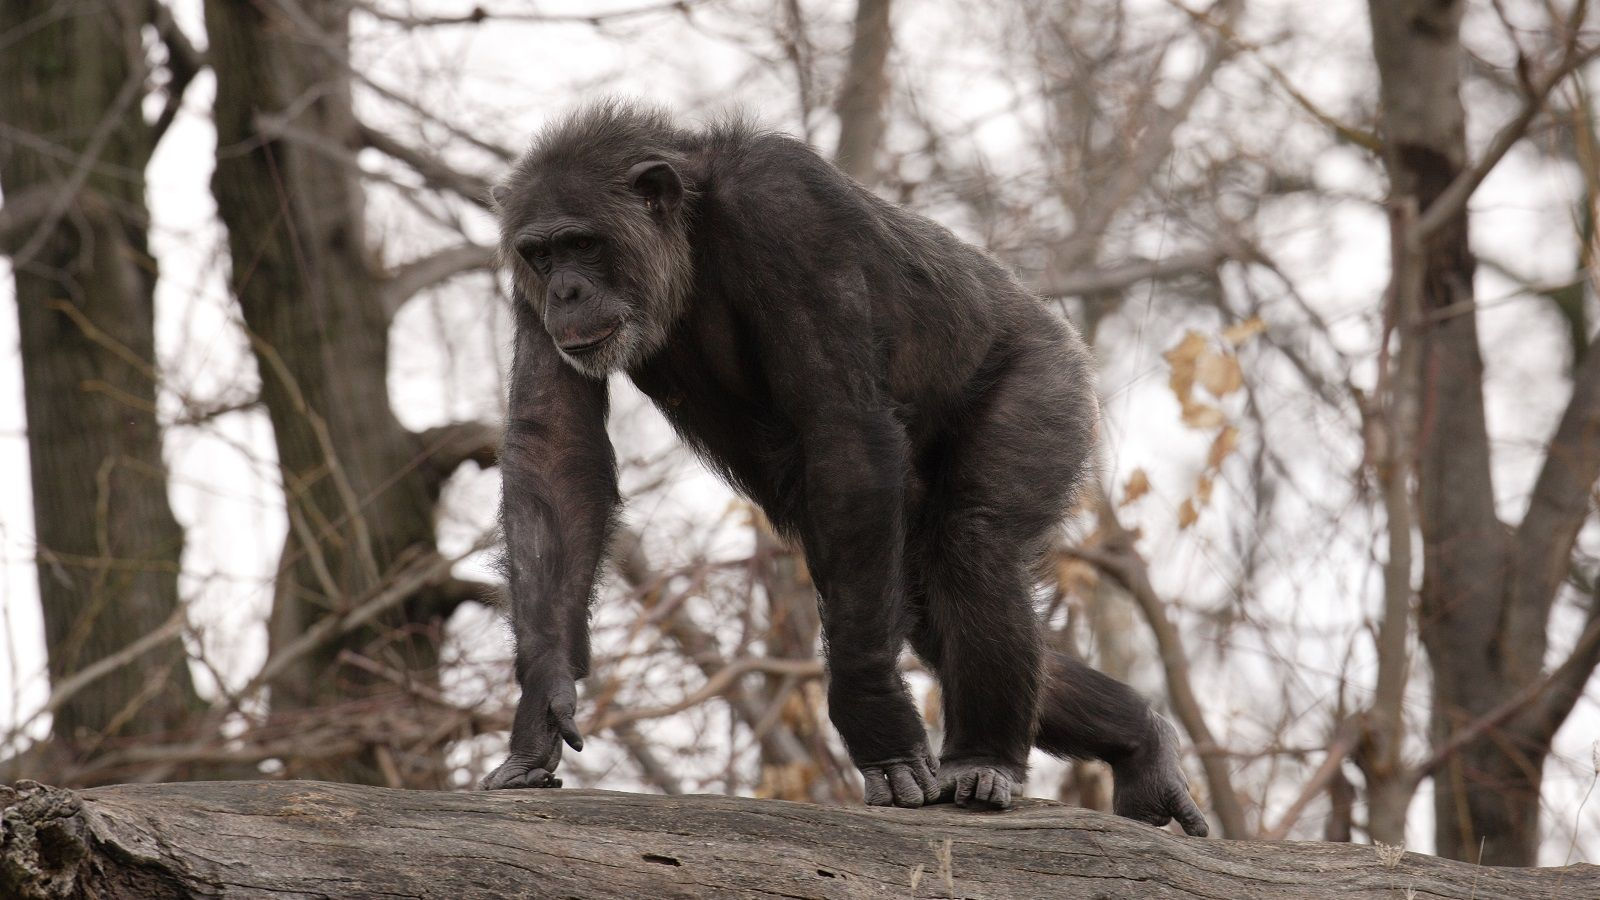 Chimpanzee at the Detroit Zoo